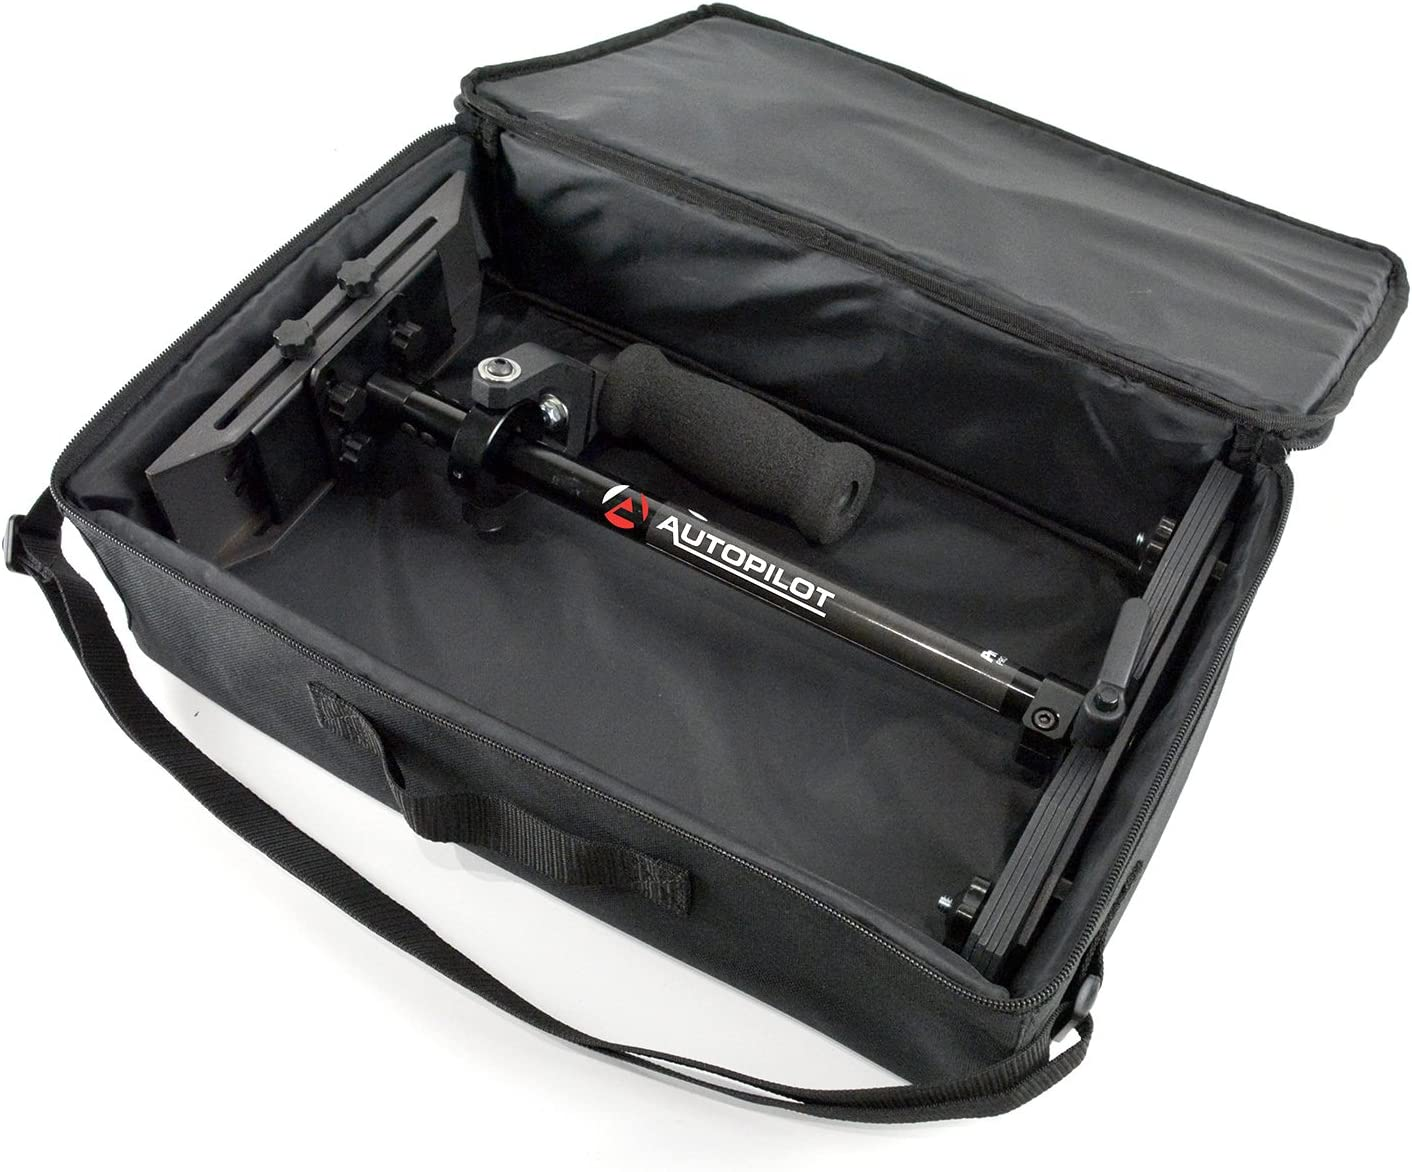 Video Film Equipment Stabilizer Carrying Bag for Gear Storage 16 in x 10 in x 4 in